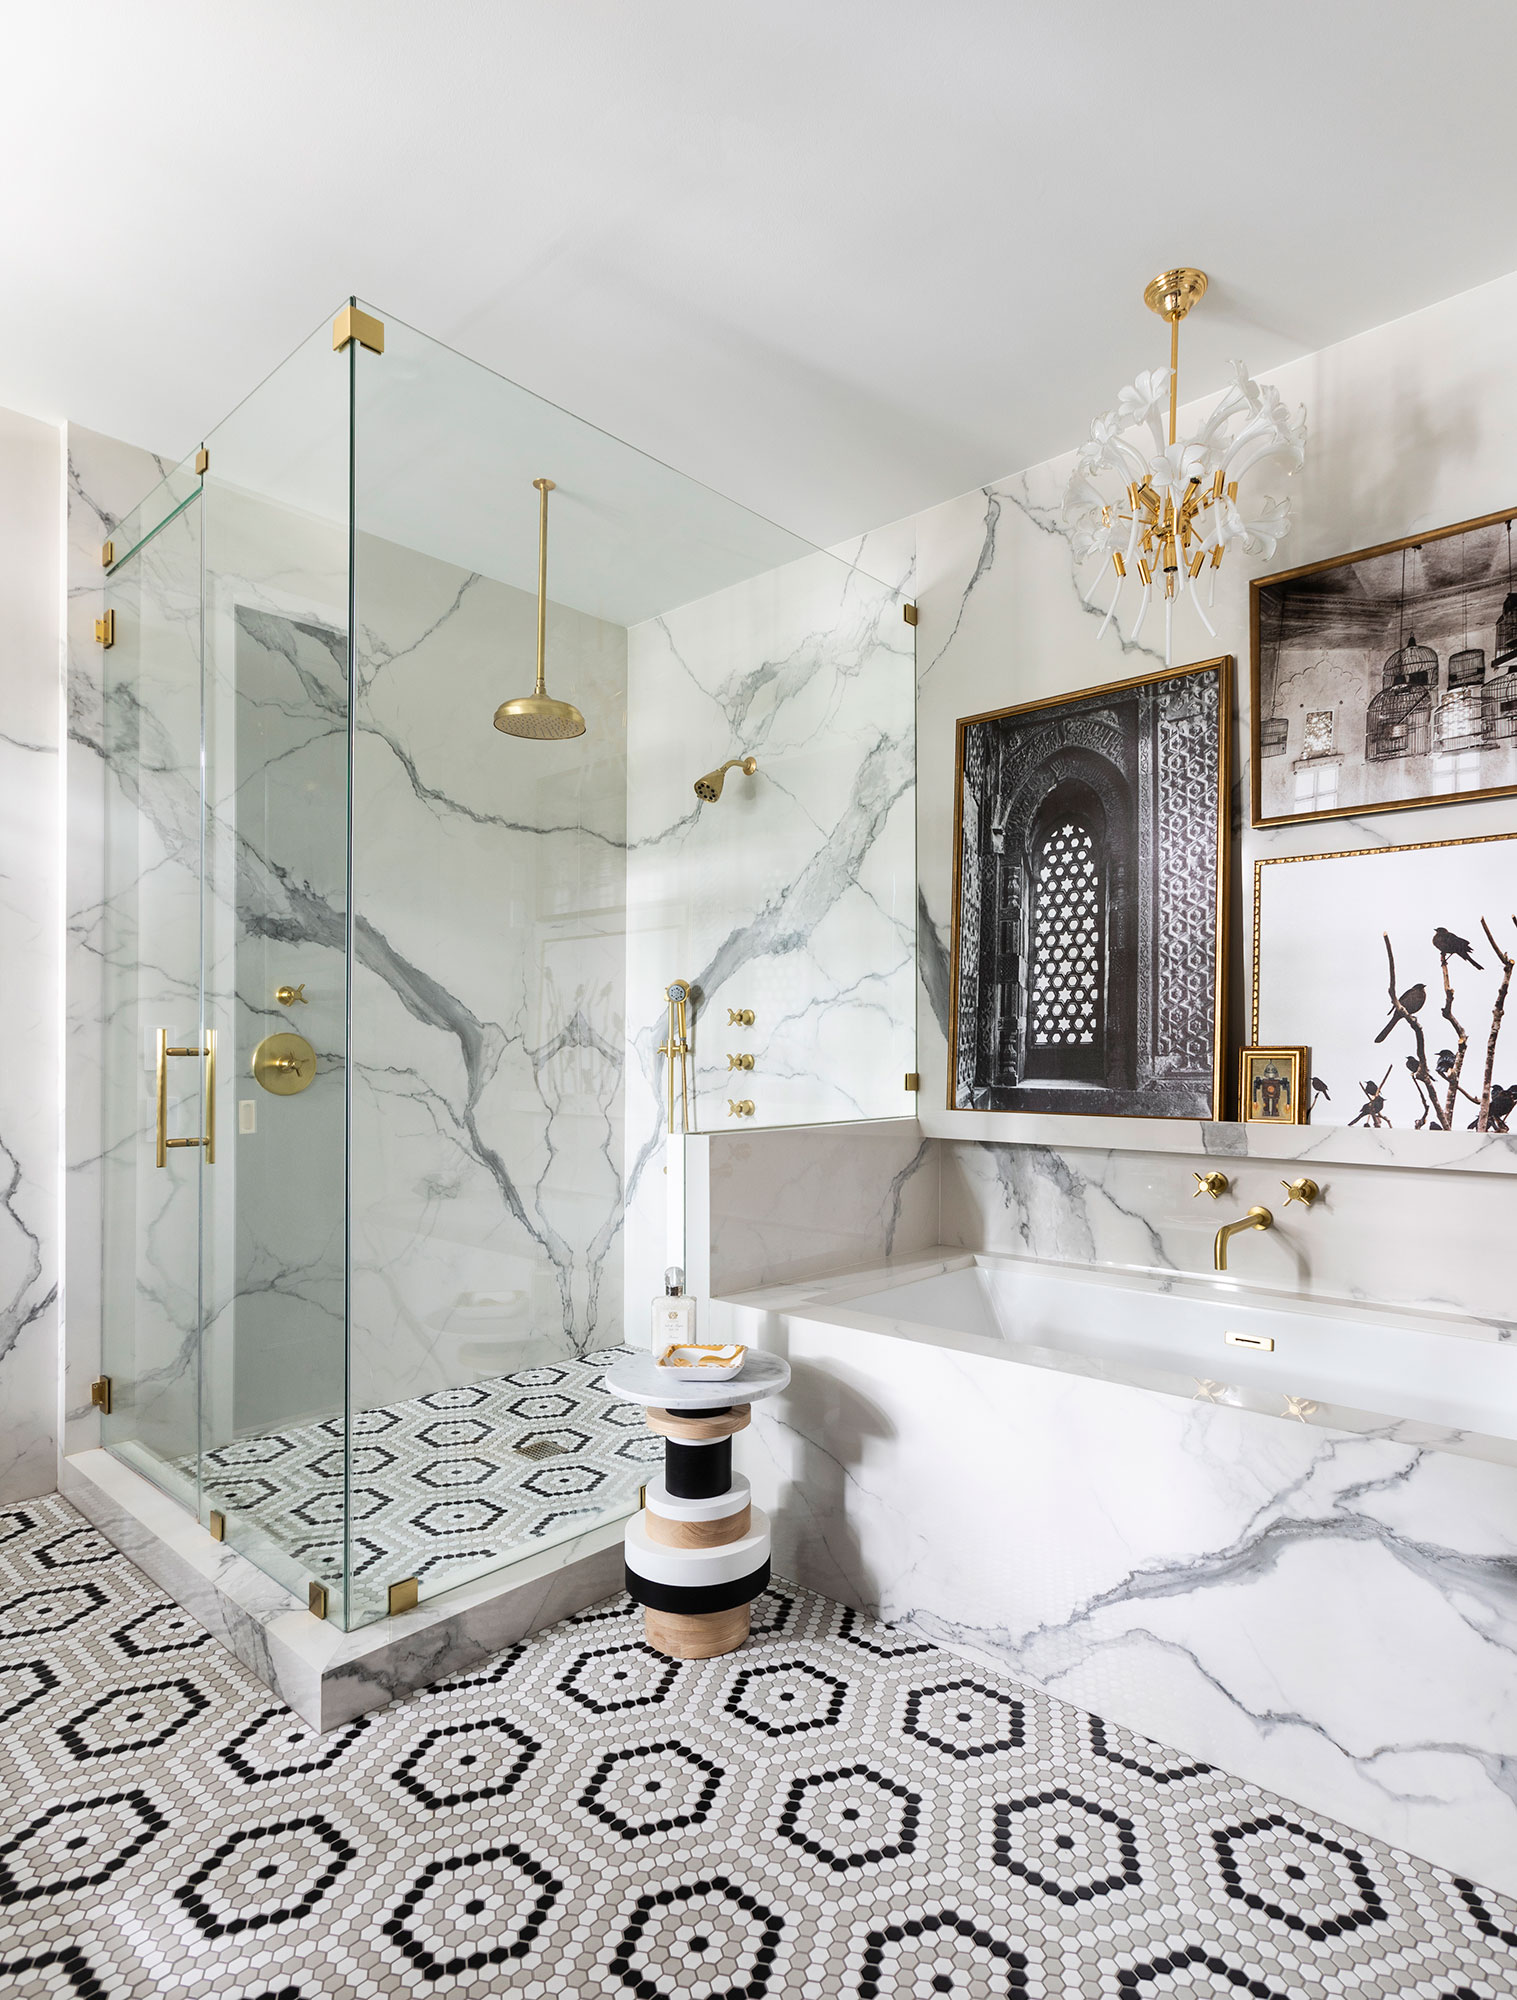 bathroom Interiors Photography - Julie Soefer Photography